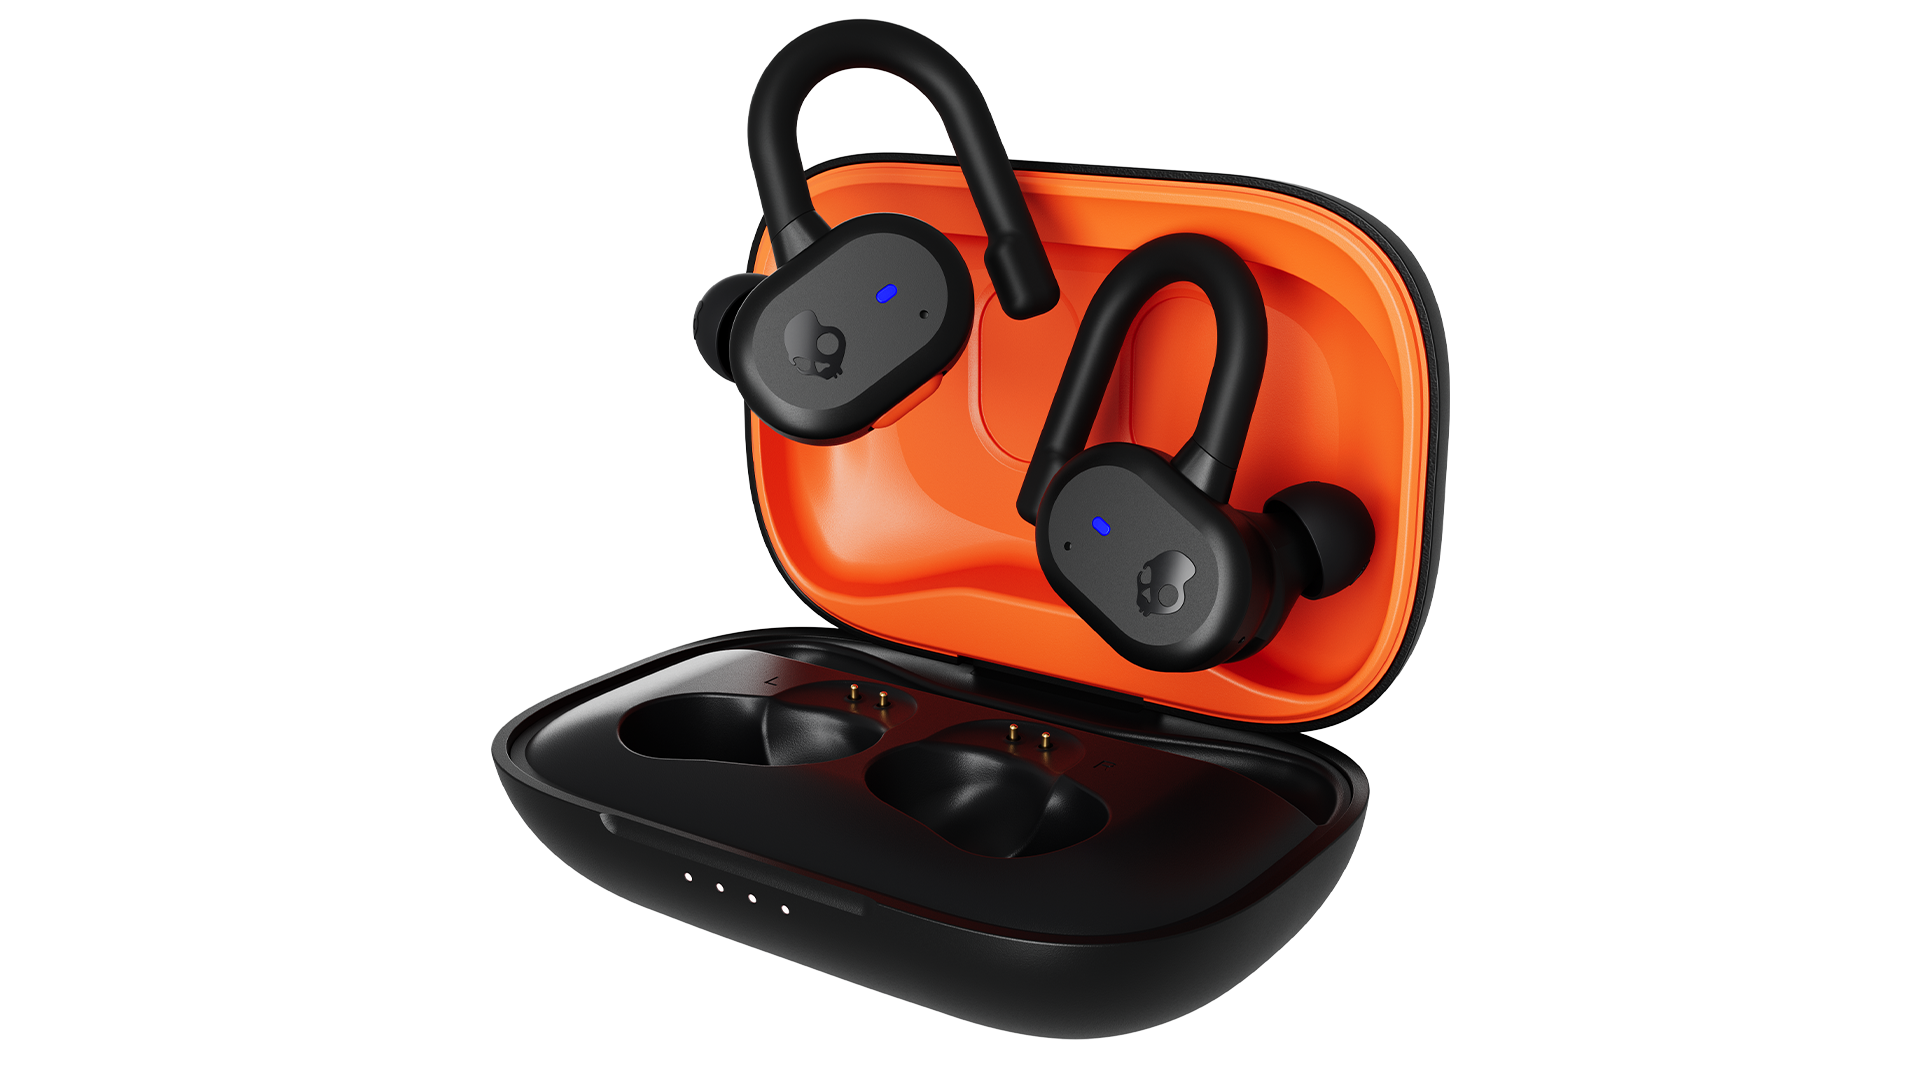 The Skullcandy Push Active sport earbuds.